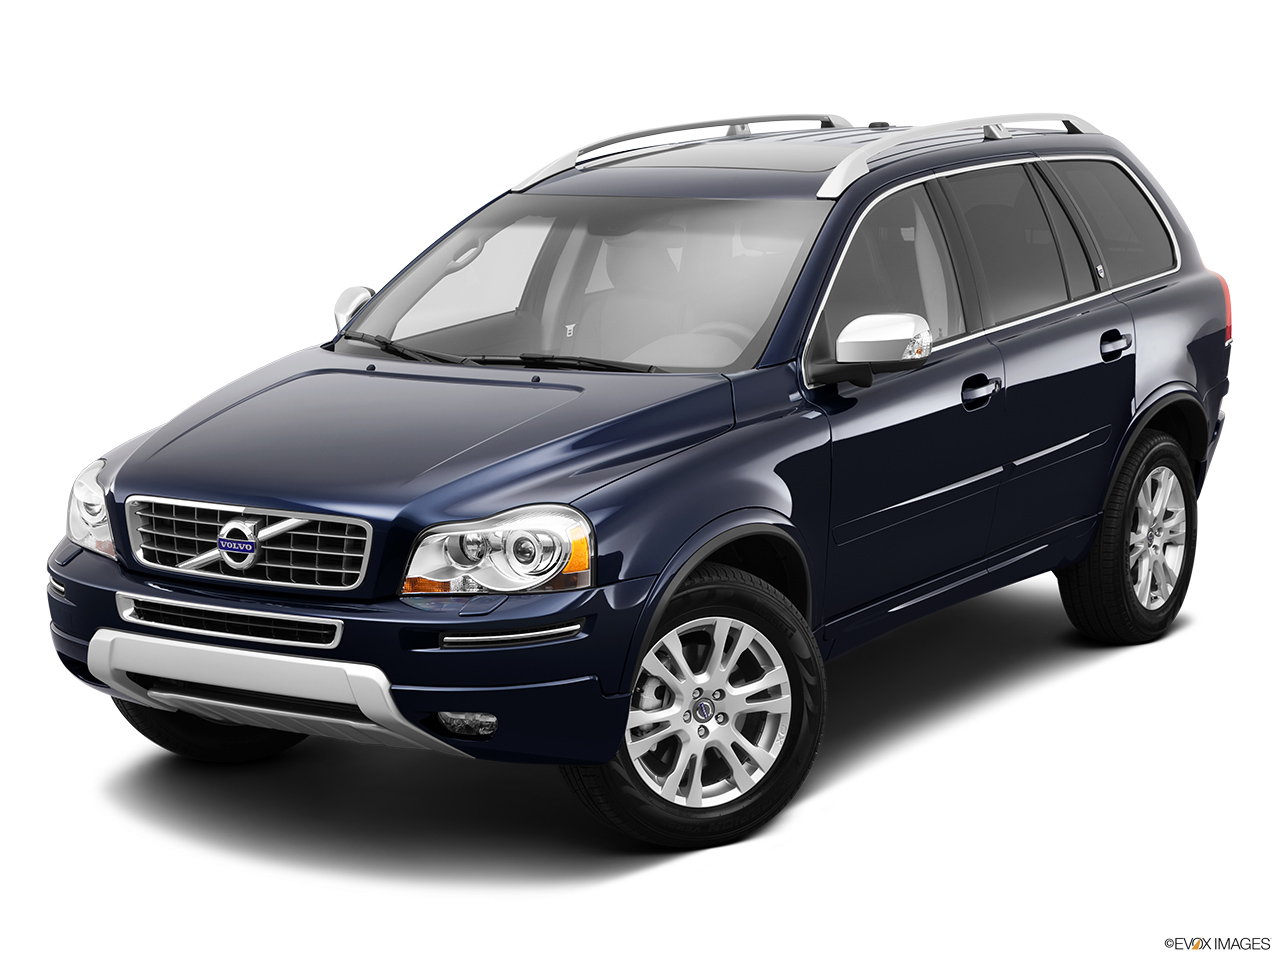 2014 volvo xc90 fwd platinum. Black Bedroom Furniture Sets. Home Design Ideas